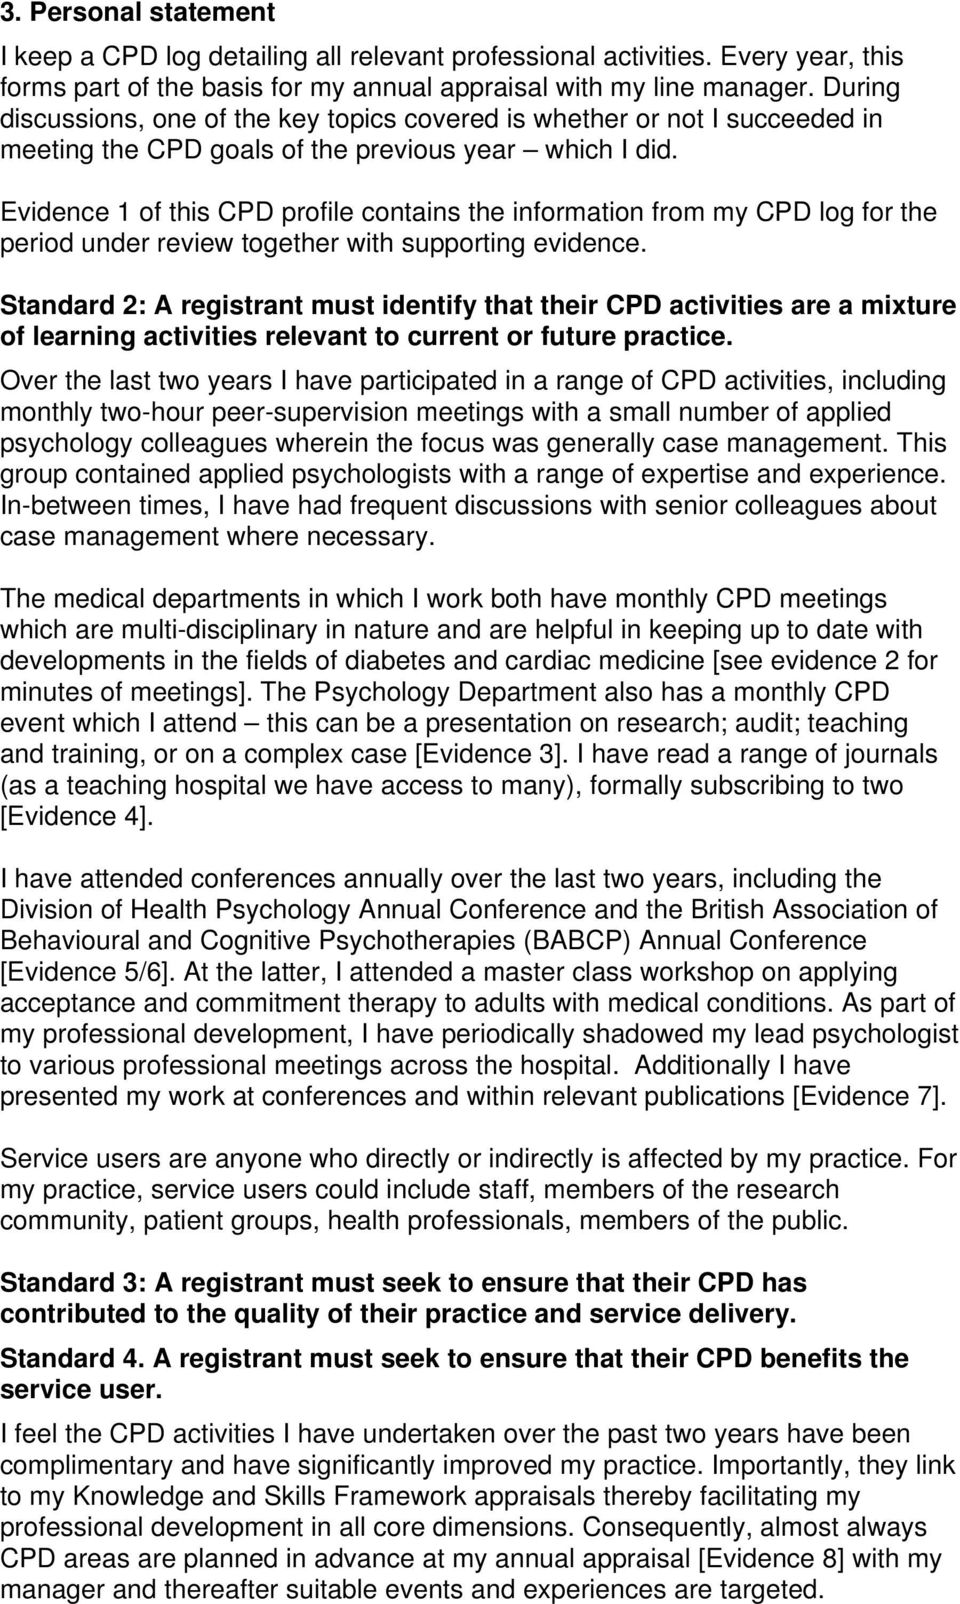 Evidence 1 of this CPD profile contains the information from my CPD log for the period under review together with supporting evidence.